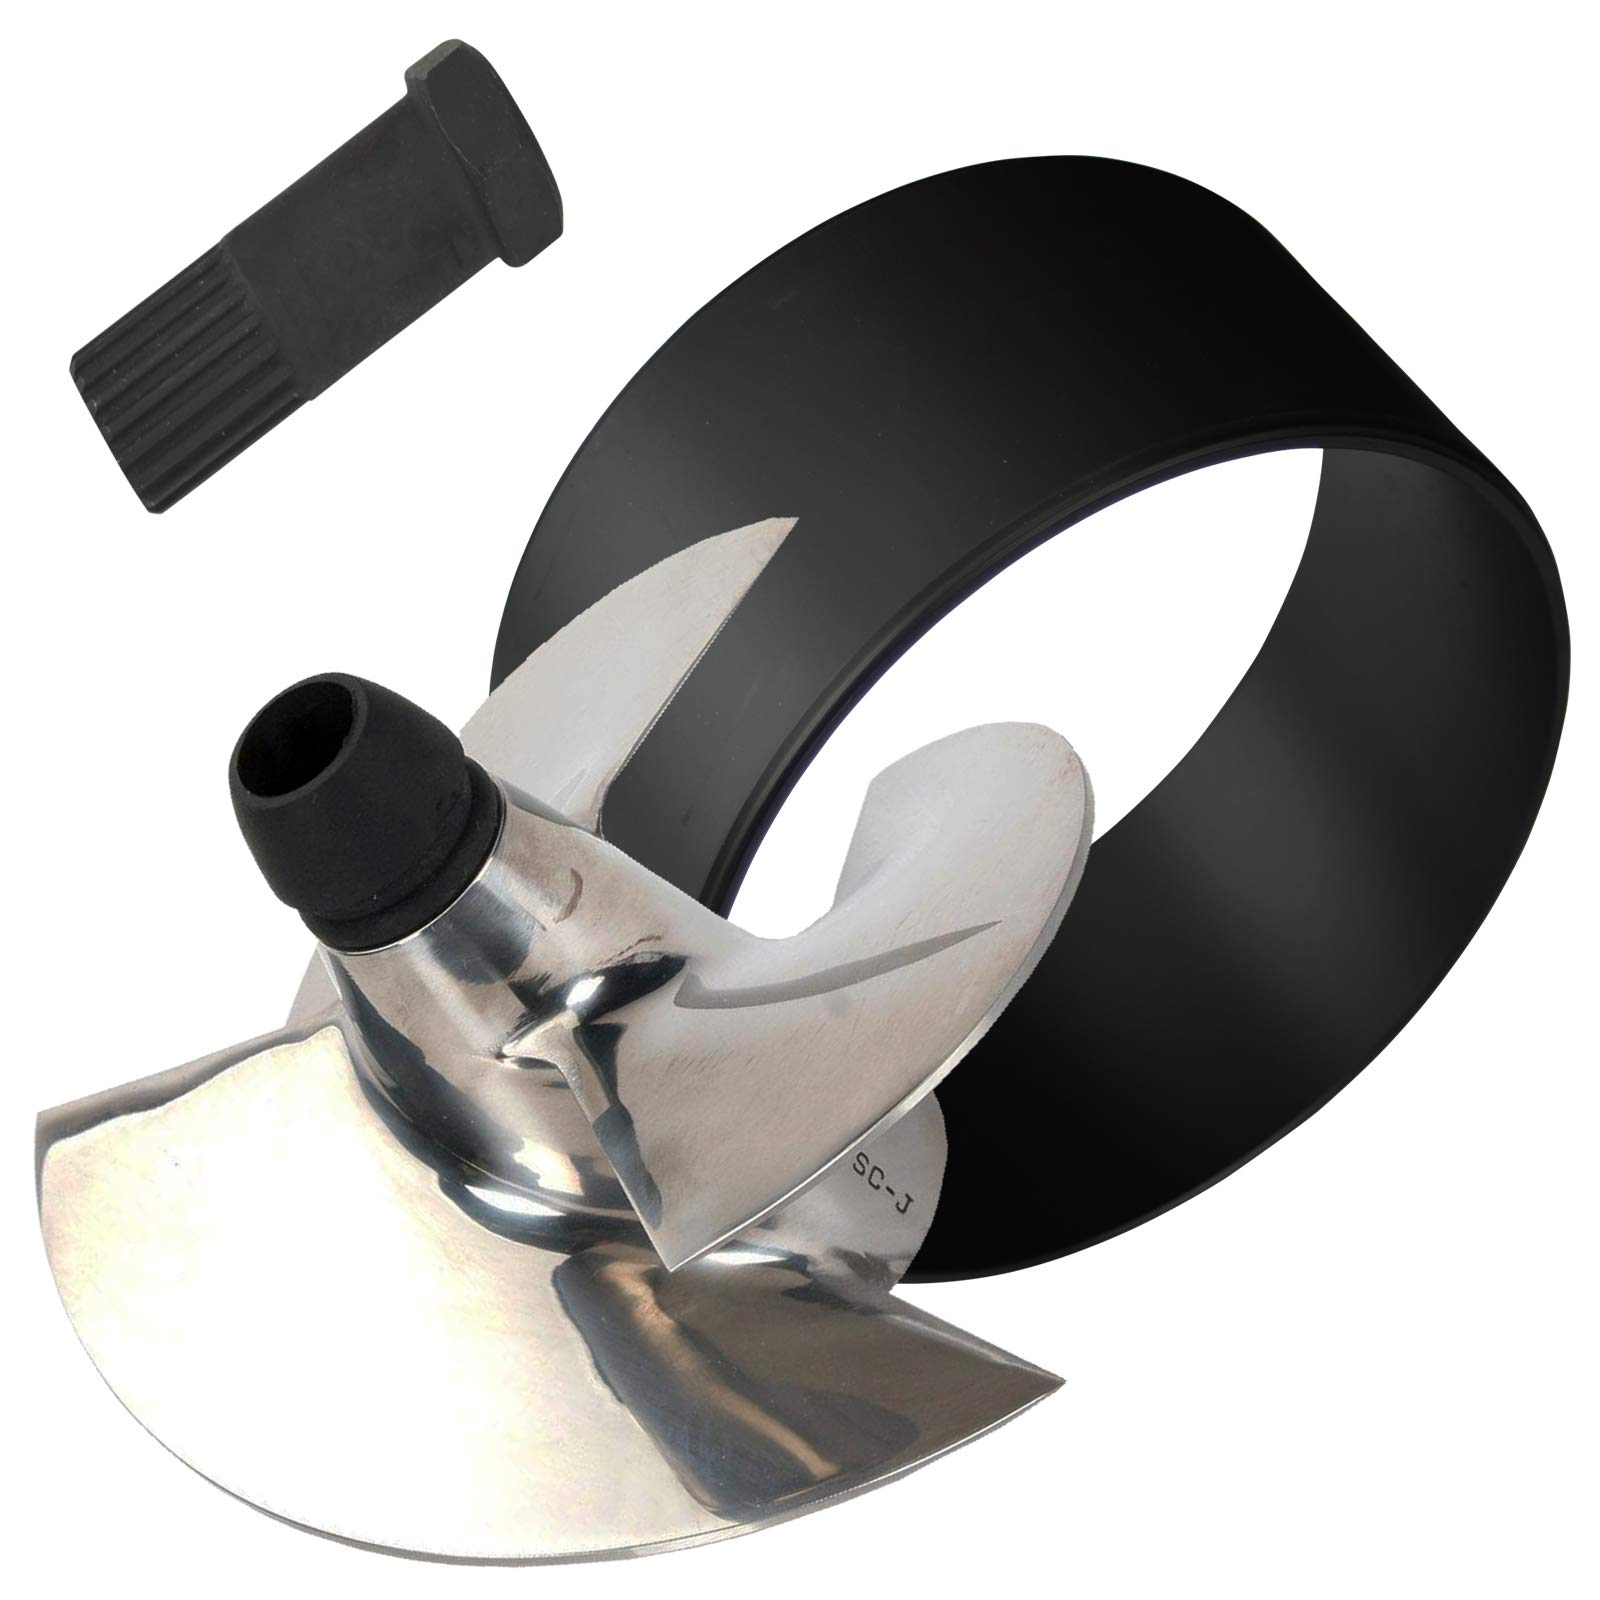 Solas Concord SF-CD-15/23 Progressive Pitch Impeller Kit w/Wear Ring & TOOL (Fits SOME 1996-2002 SeaDoo GSX GTX RFI, See Ad For EXACT Model & Year Fit)